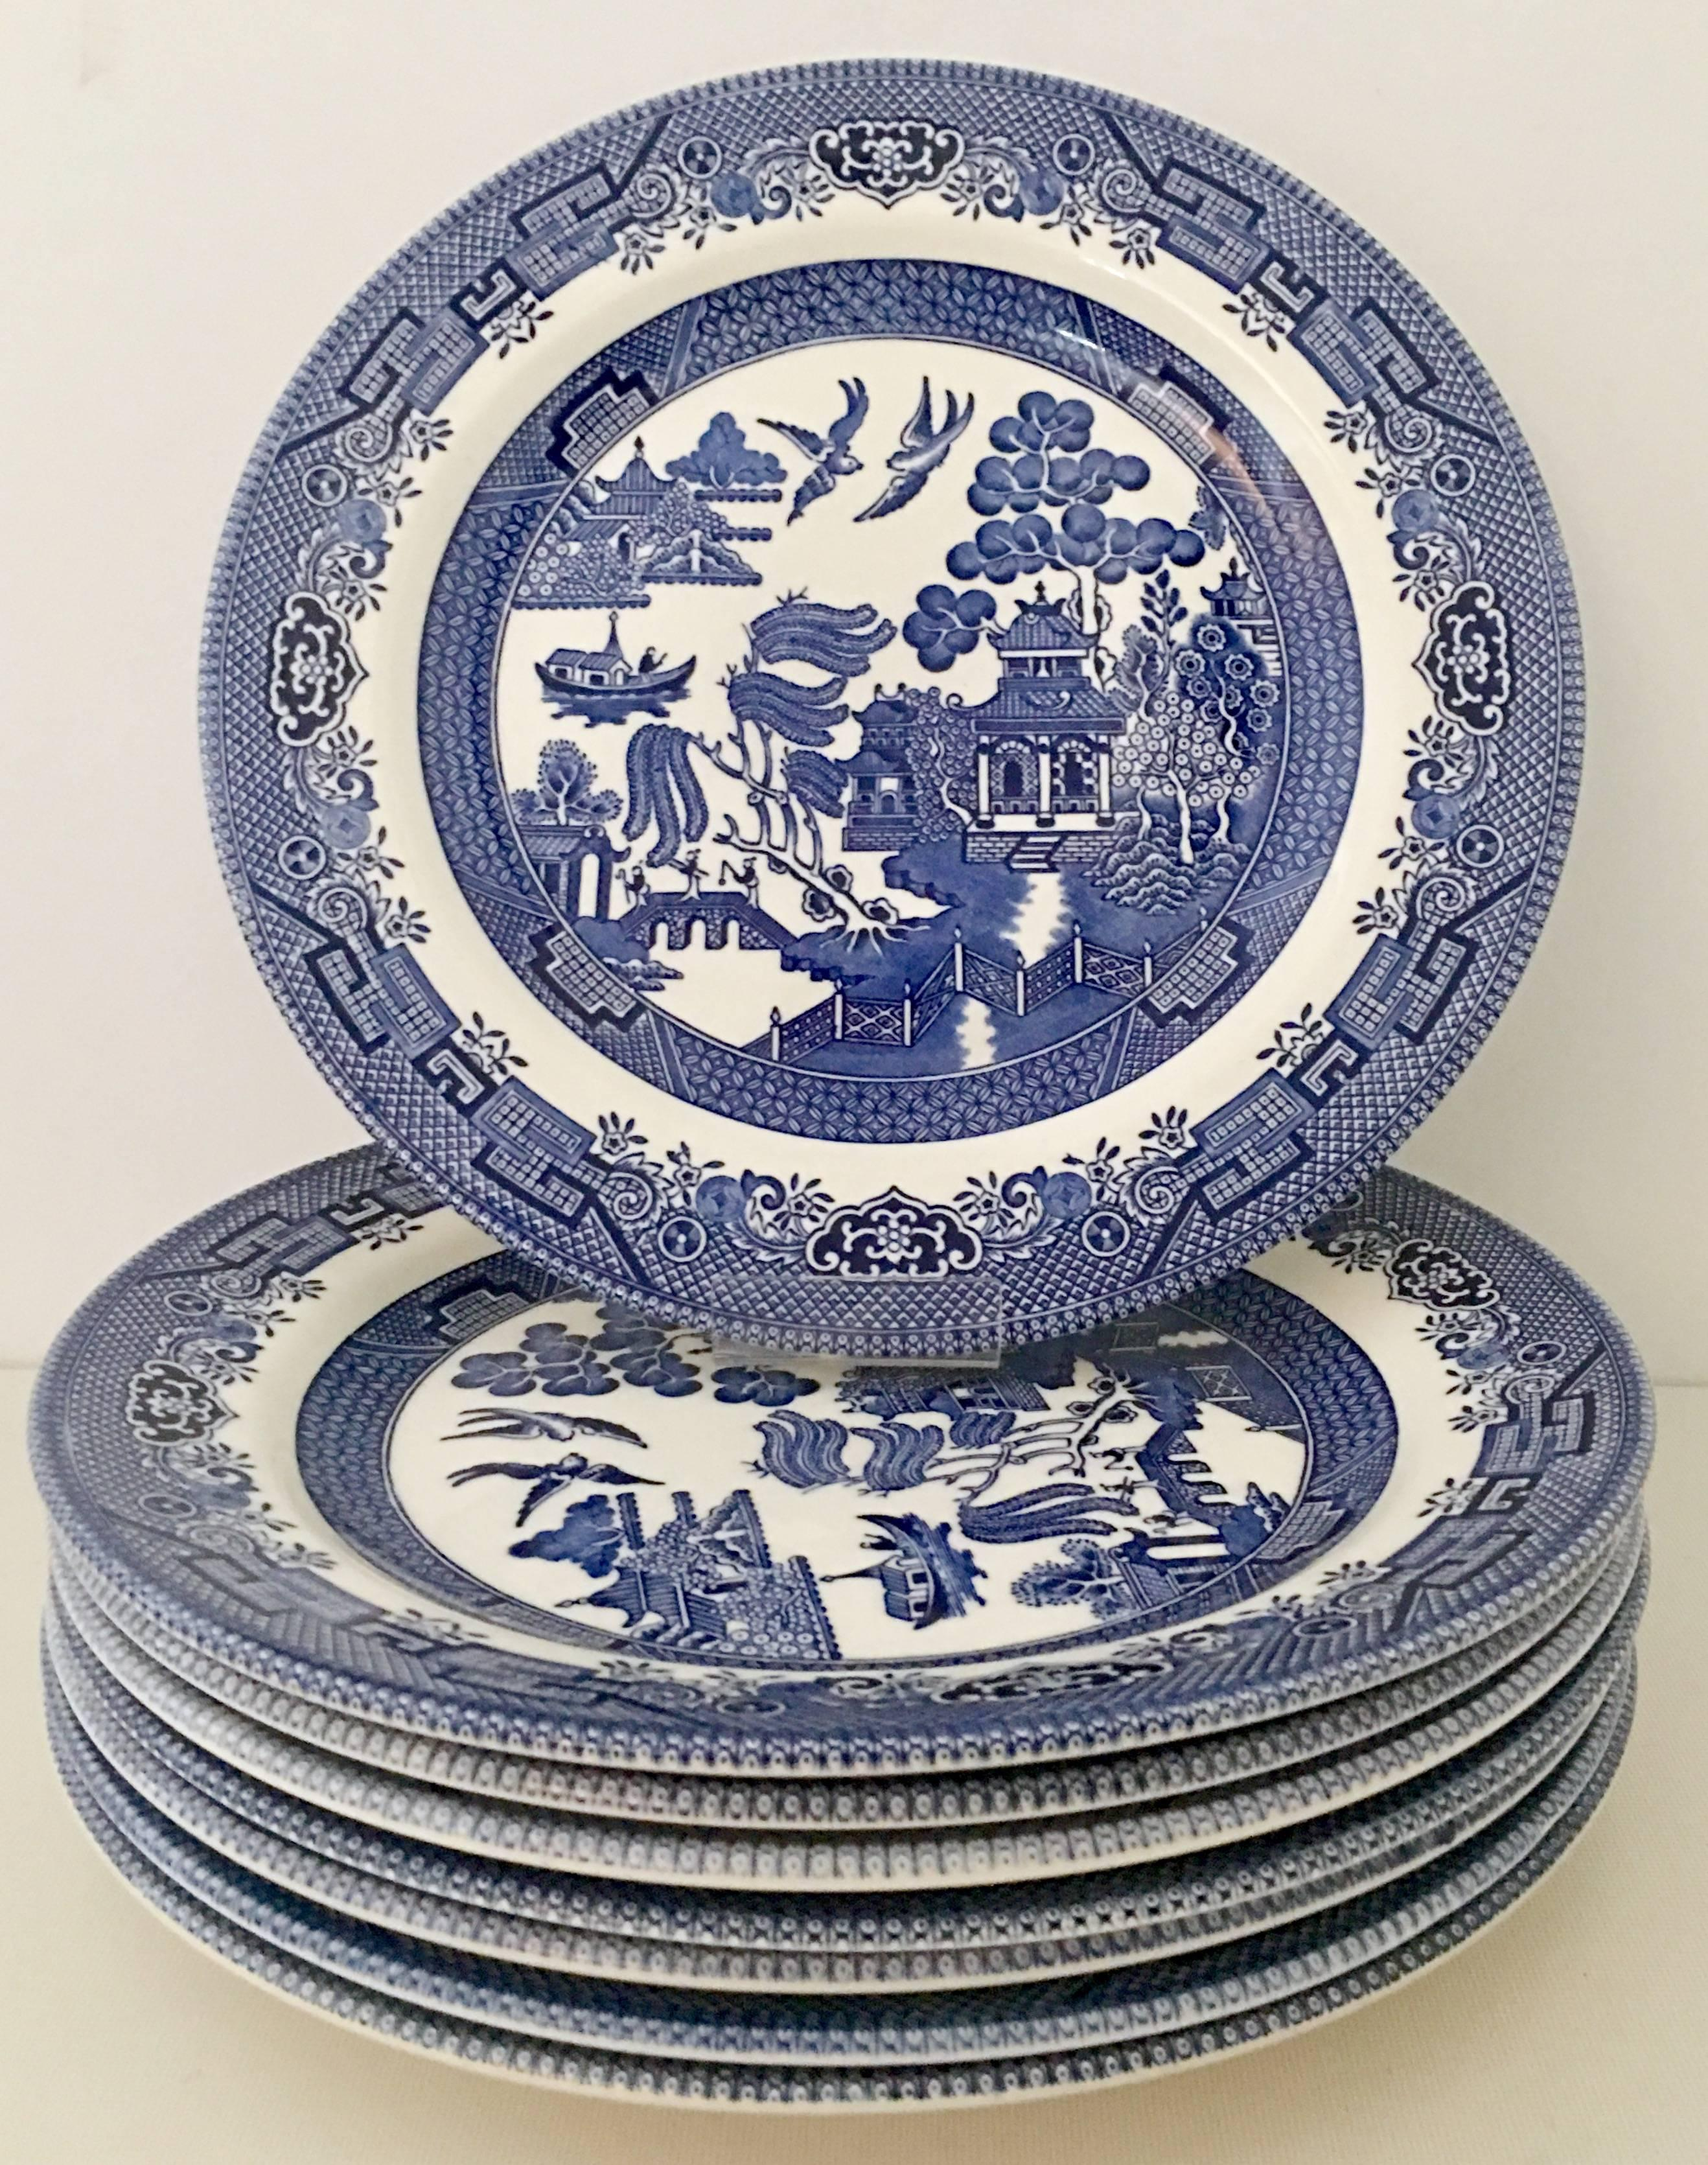 Vintage Staffordshire England \u0026quot;Blue Willow\u0026quot; dinnerware set of seventeen pieces. & Vintage Staffordshire England Ceramic Dinnerware \